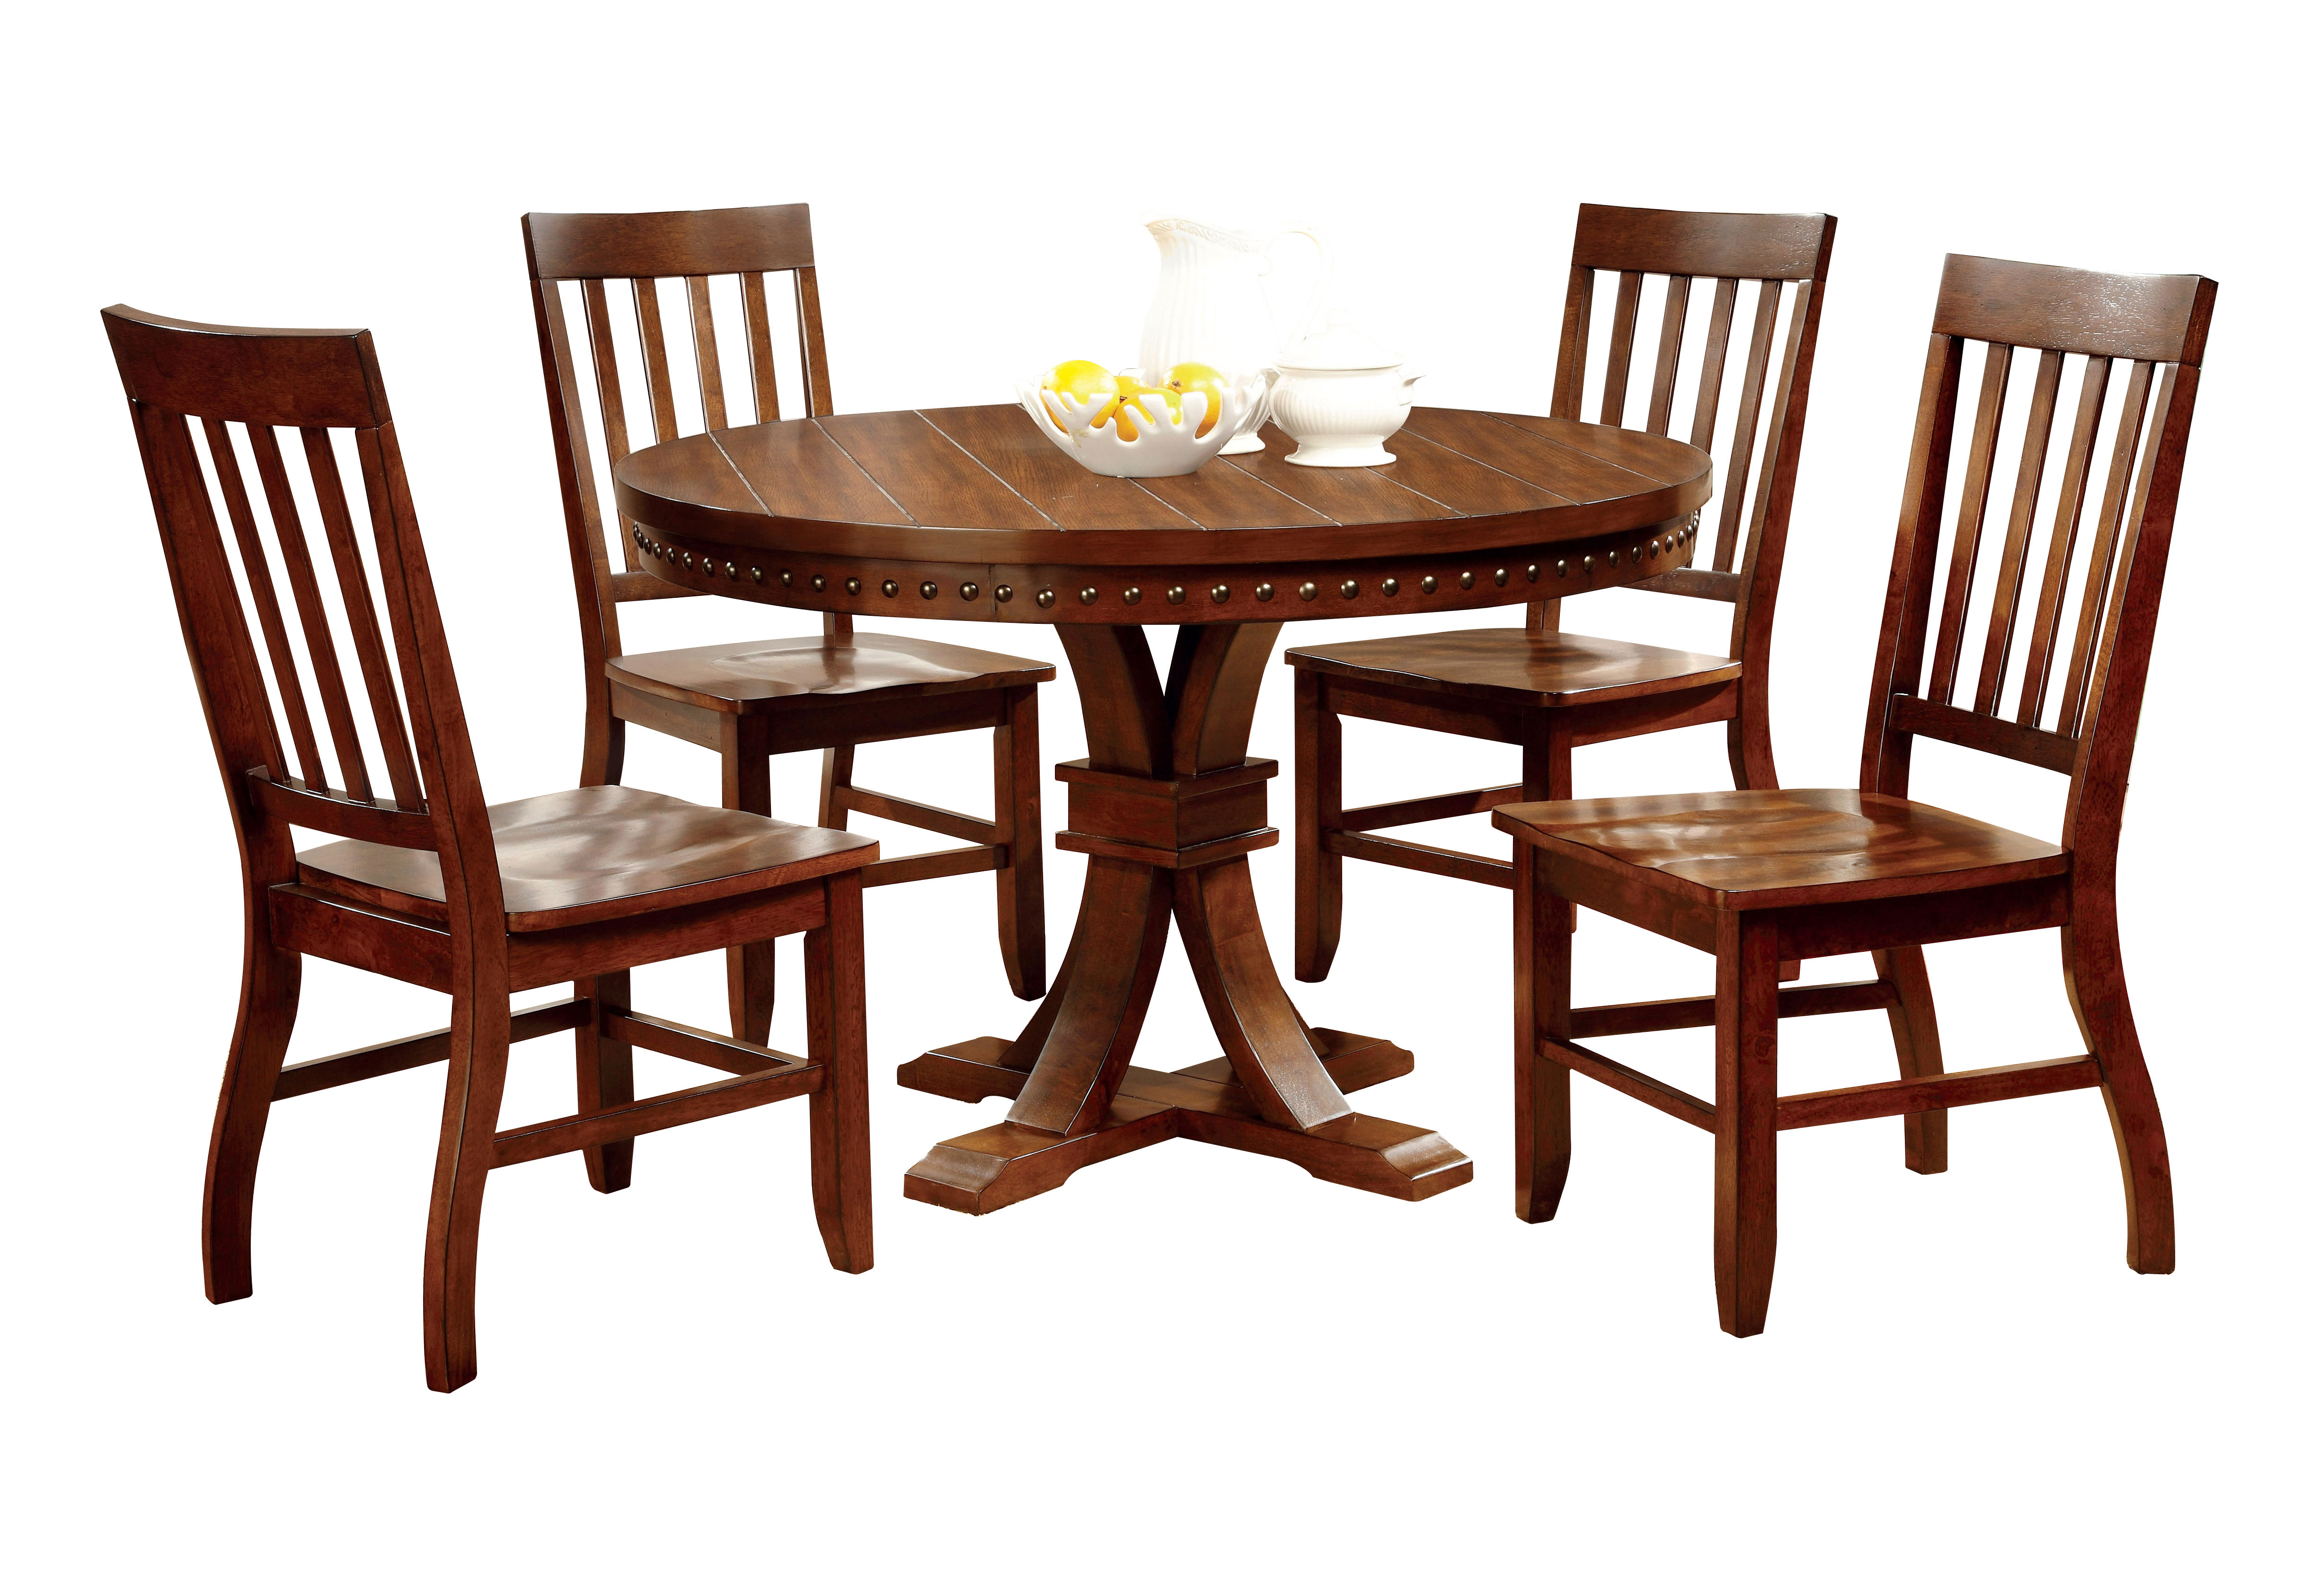 Jared 5 Piece Dining Set Within Newest Jarrod 5 Piece Dining Sets (View 9 of 20)